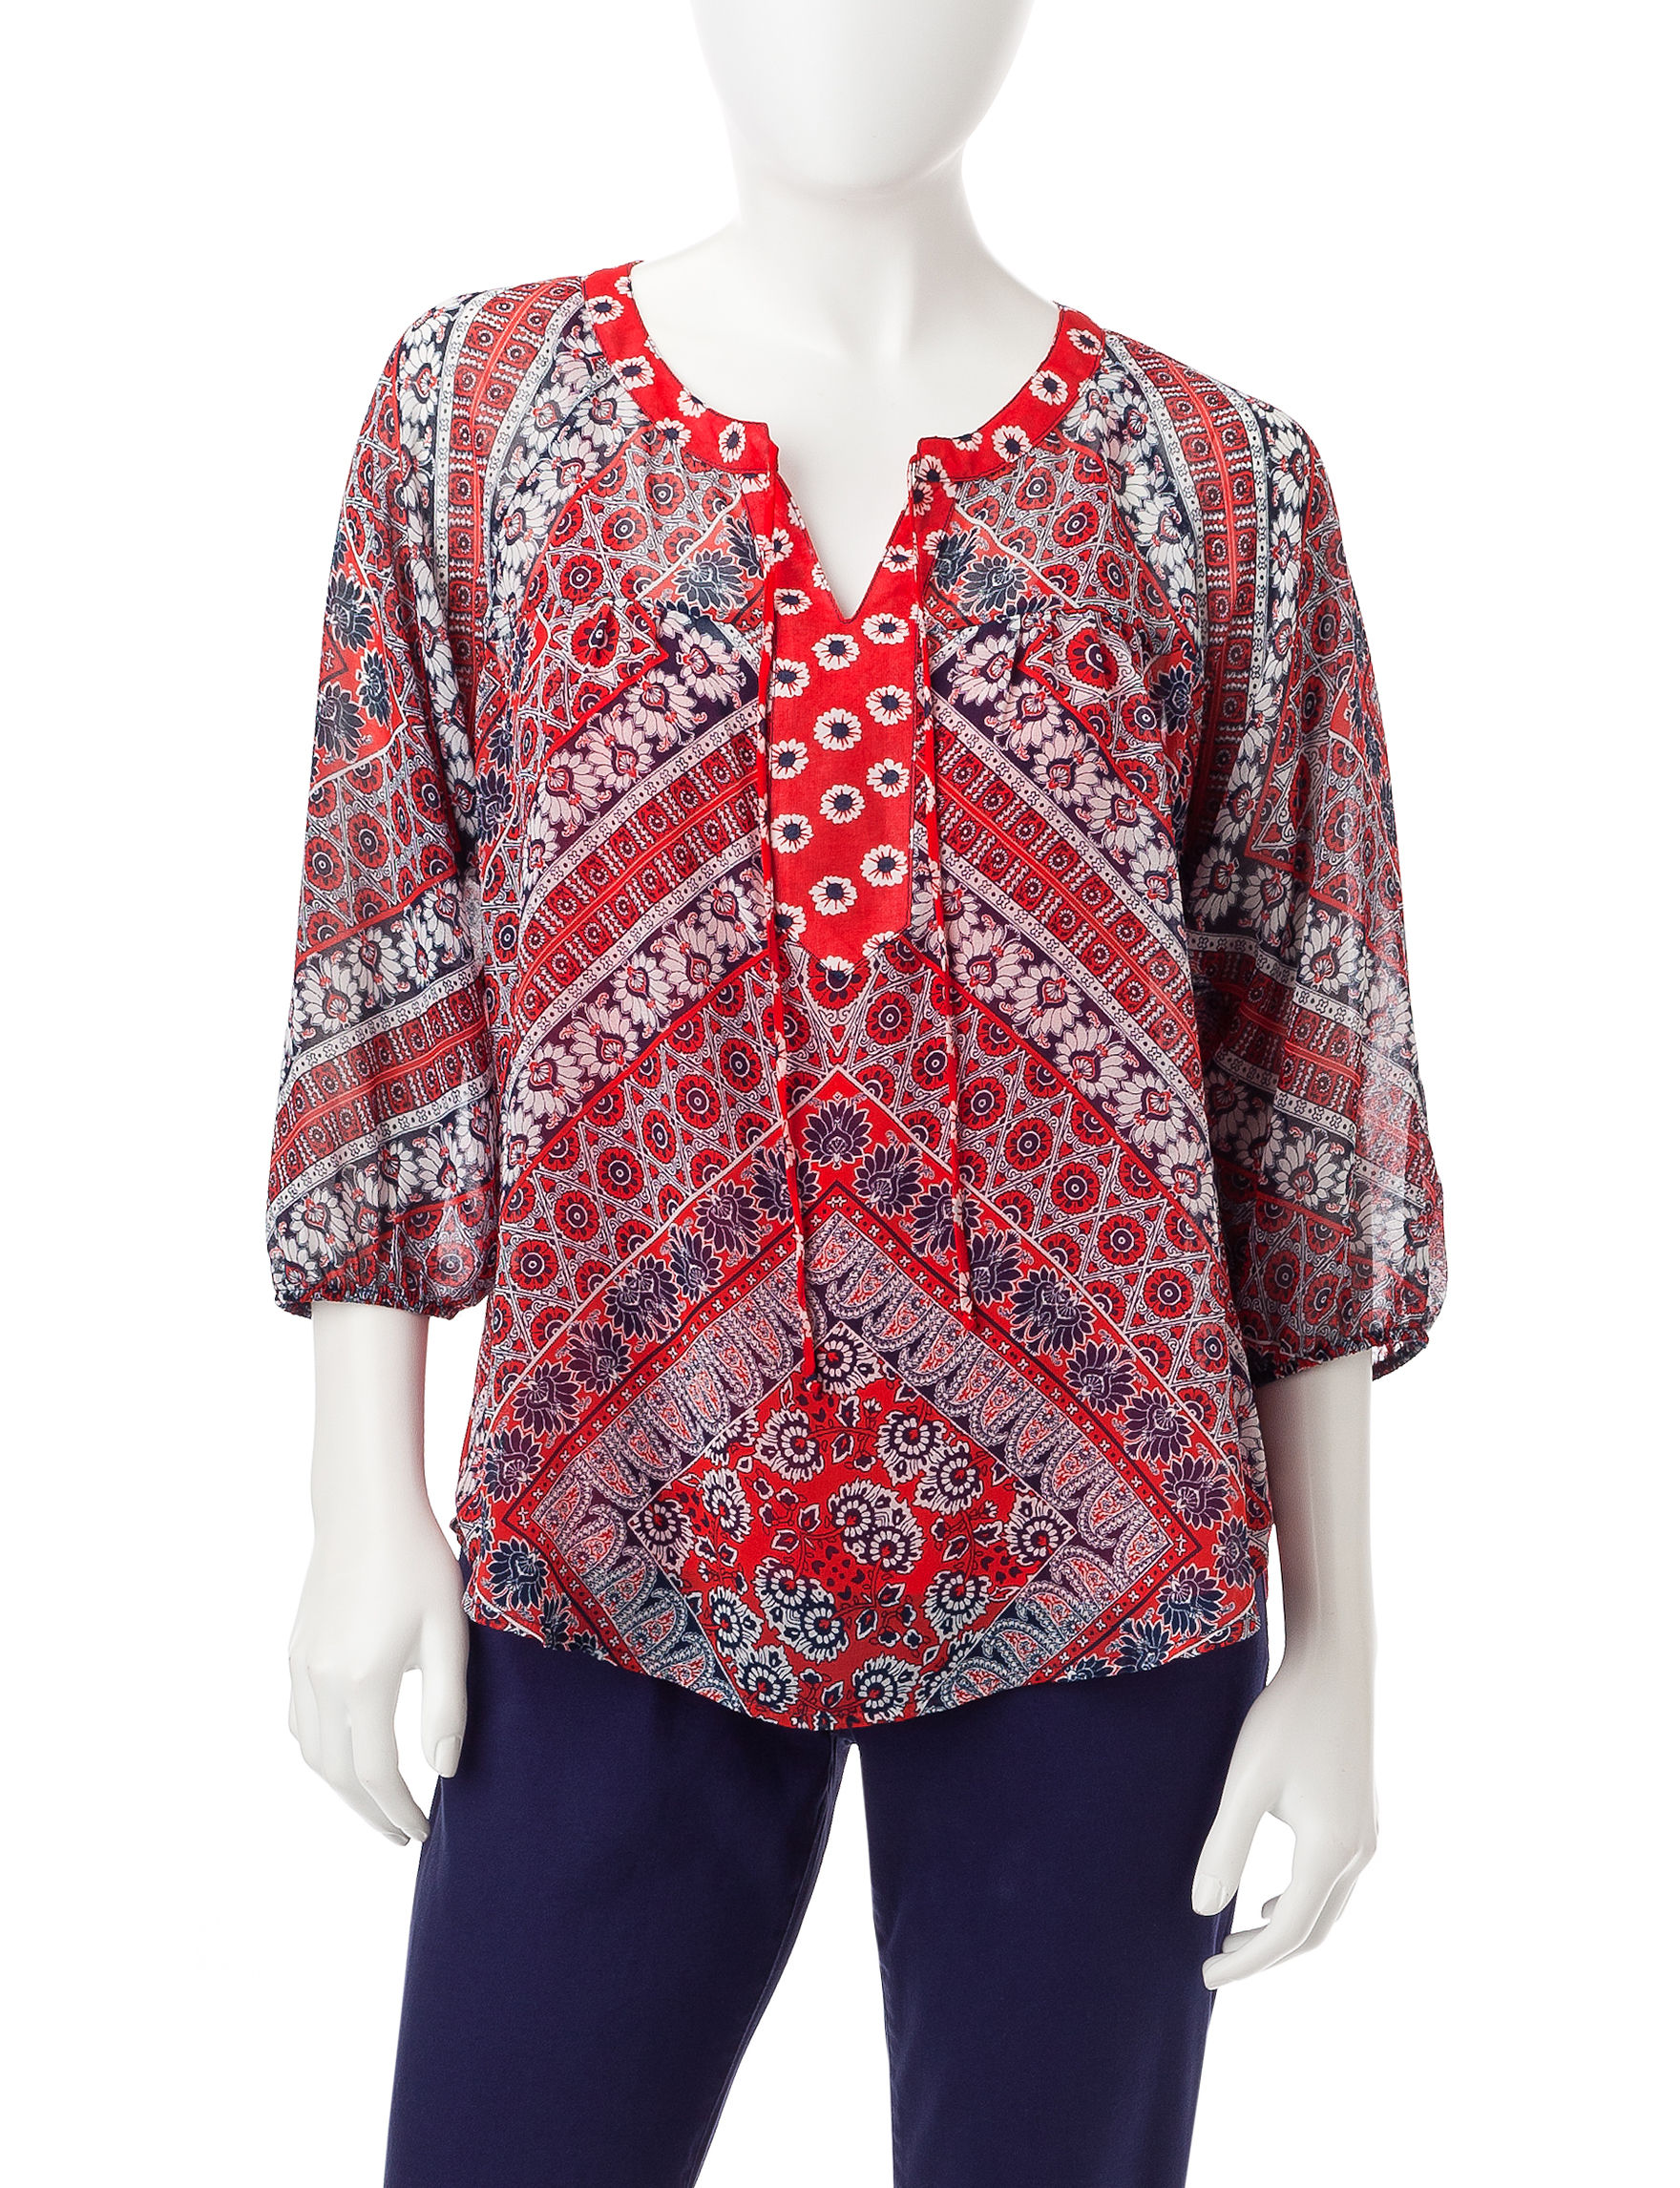 Figuero & Flower Red / White / Blue Shirts & Blouses